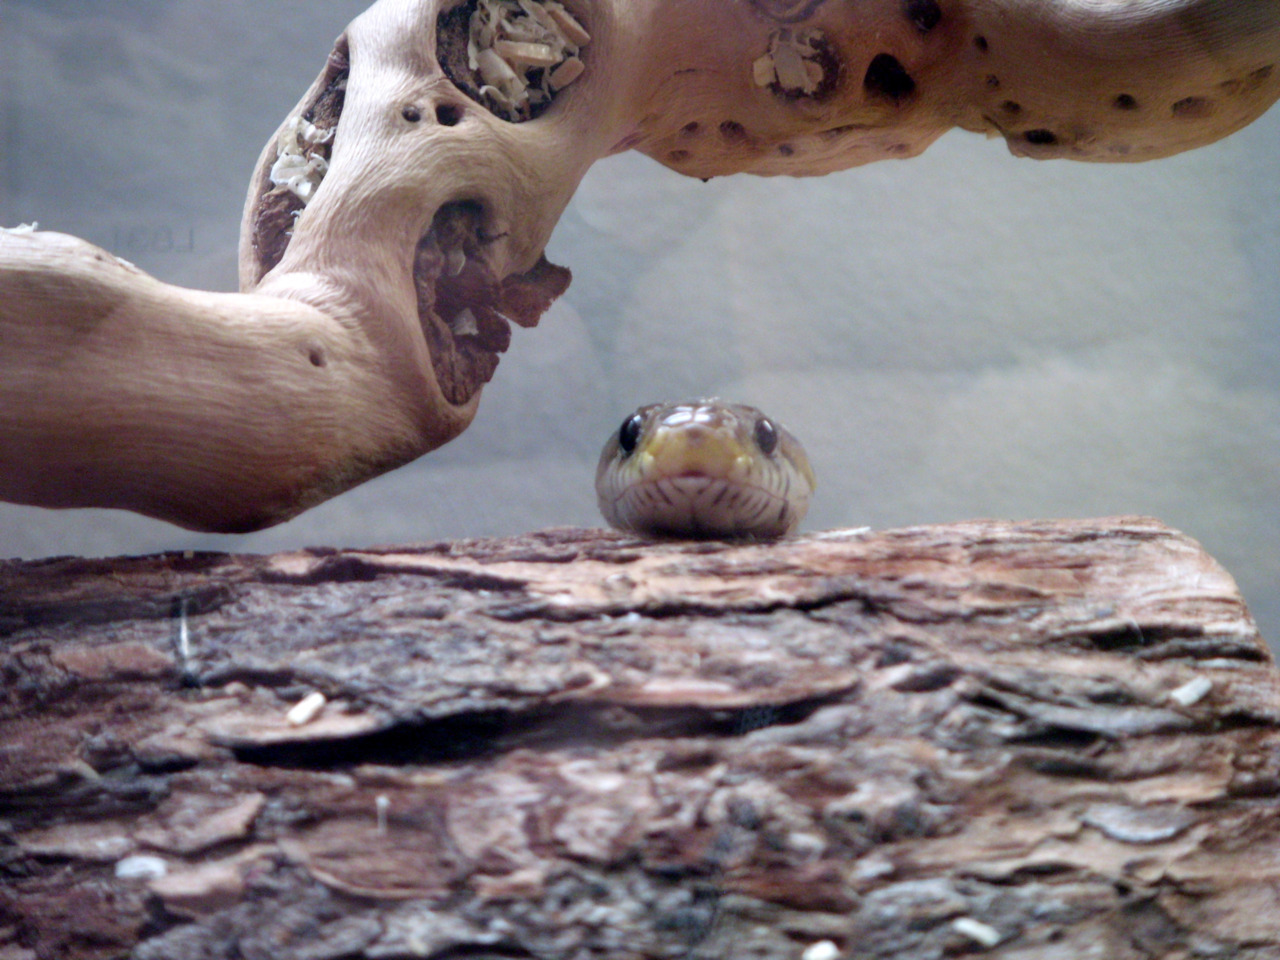 reptilesandexotics:  Rowan, the corn snake, chillin'. Submitted by  derosnec